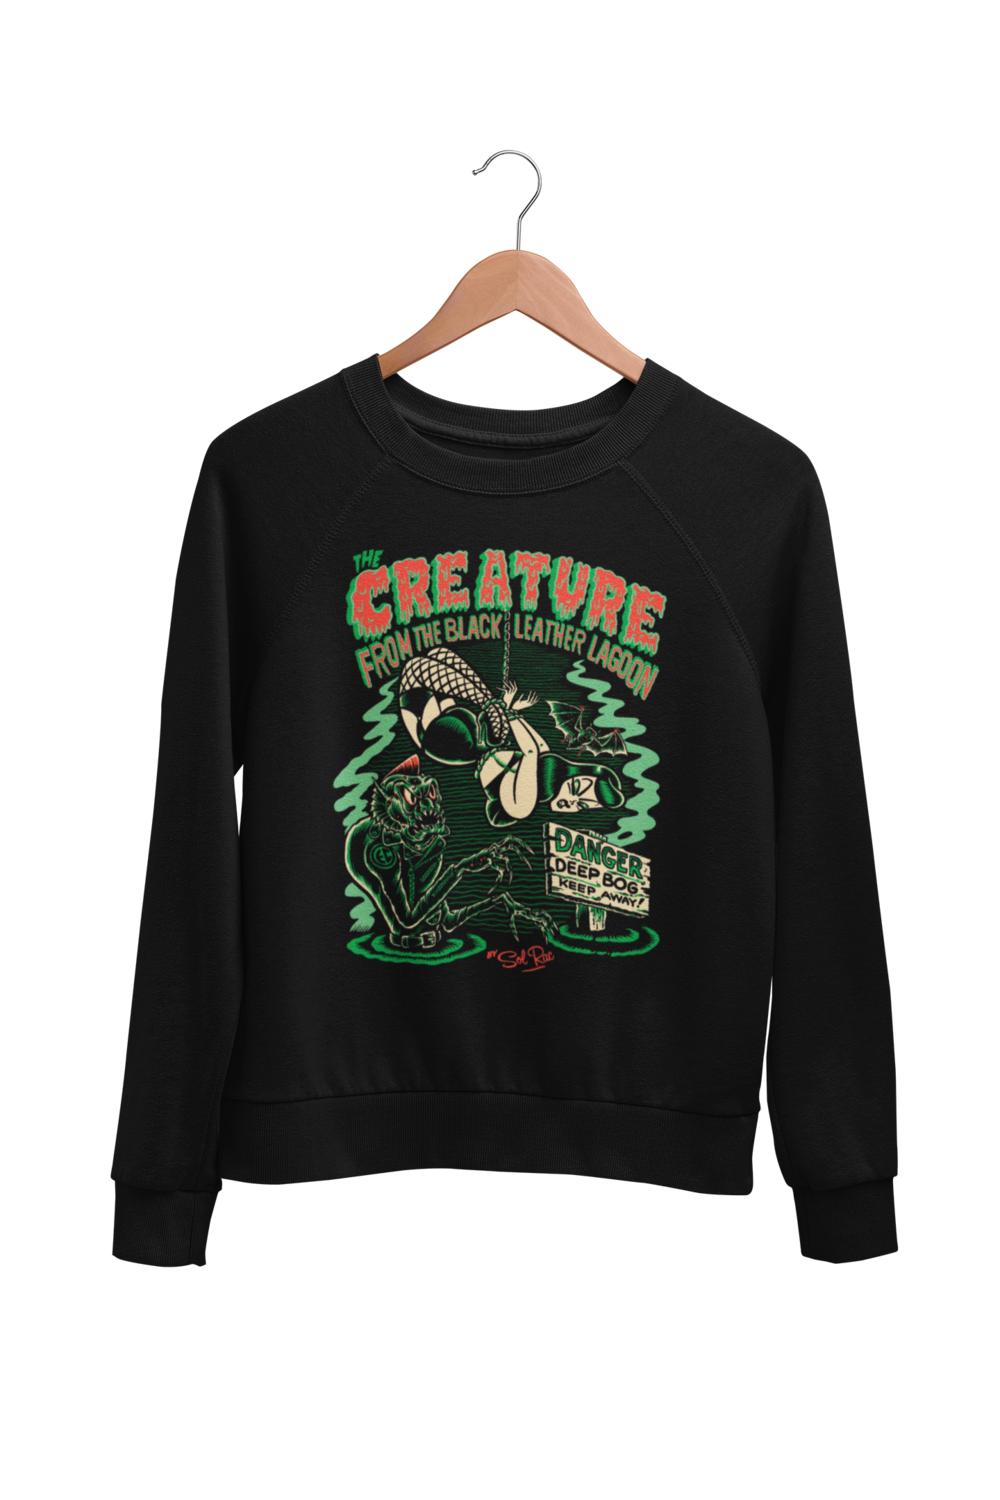 CREATURE FROM BLACK LEATHER SWEATSHIRT UNISEX by BY SOL RAC